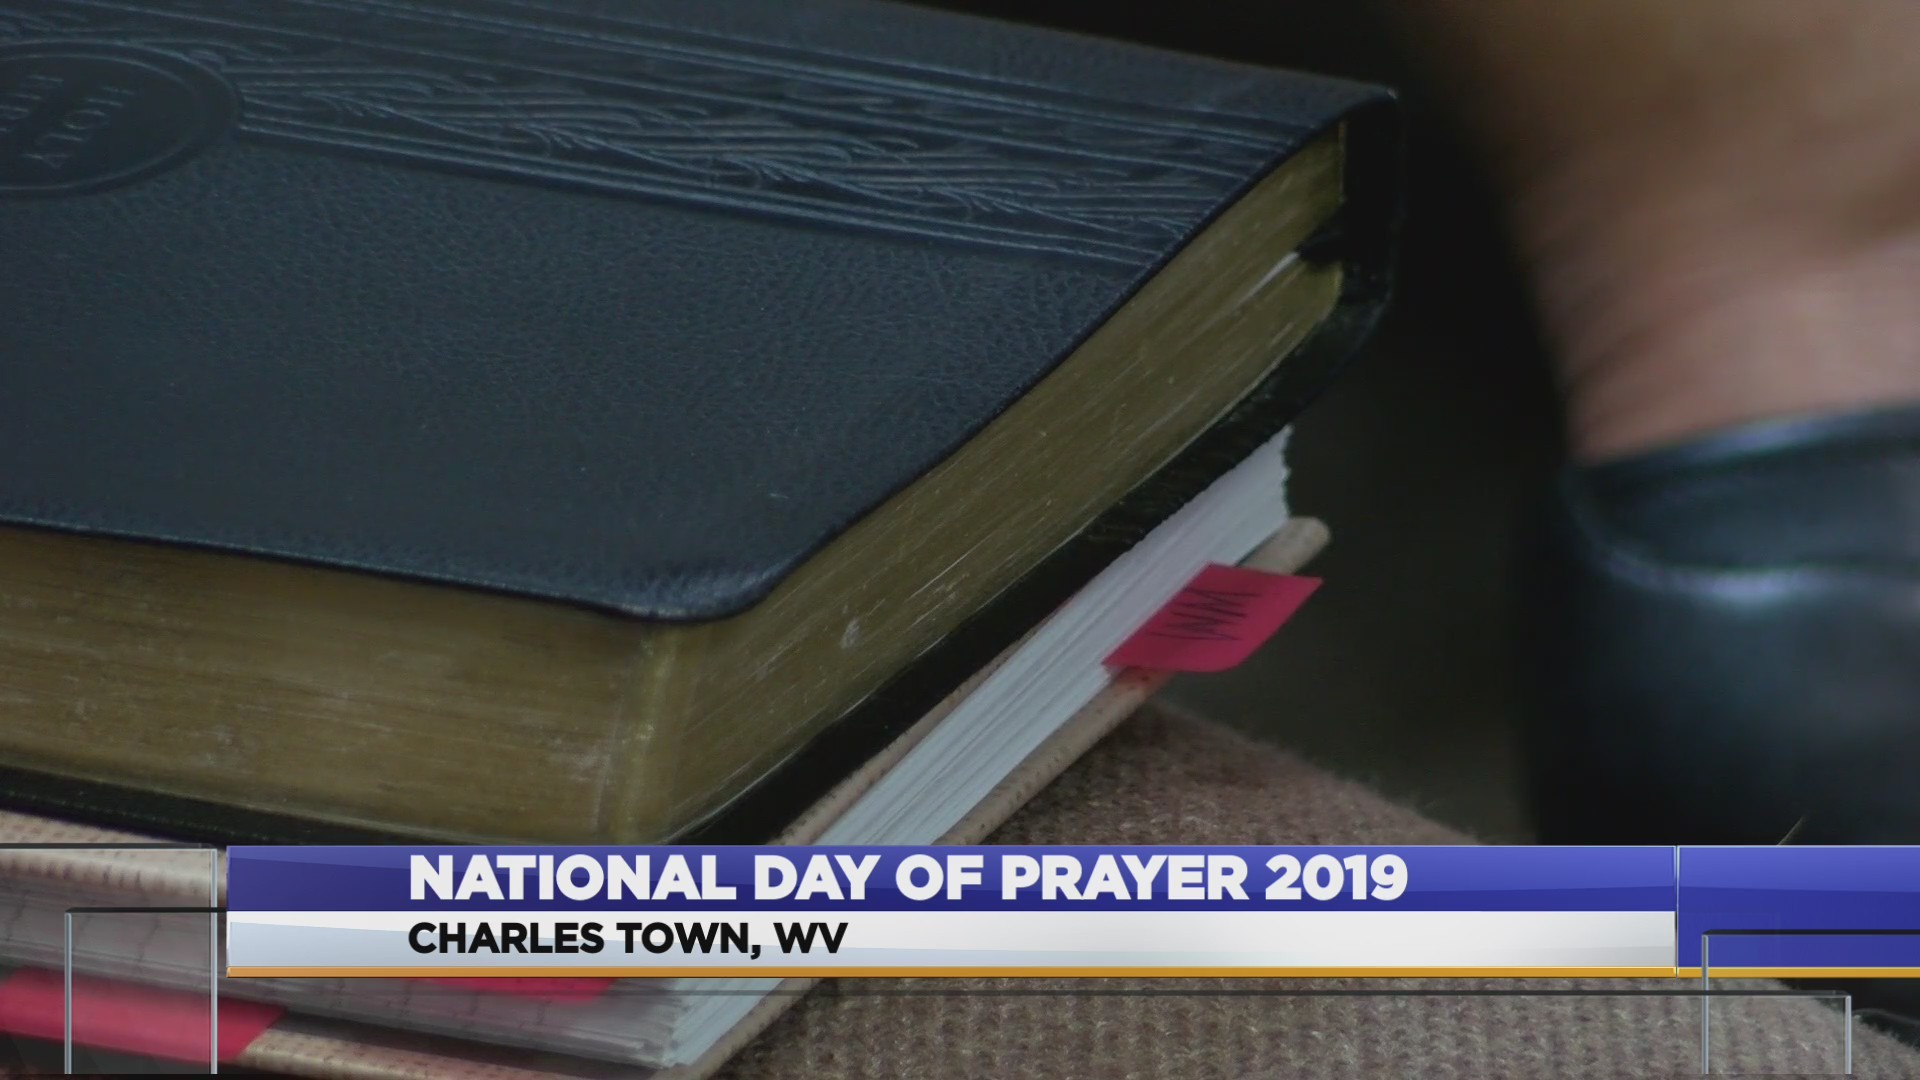 National_Day_of_Prayer_9_20190503021355